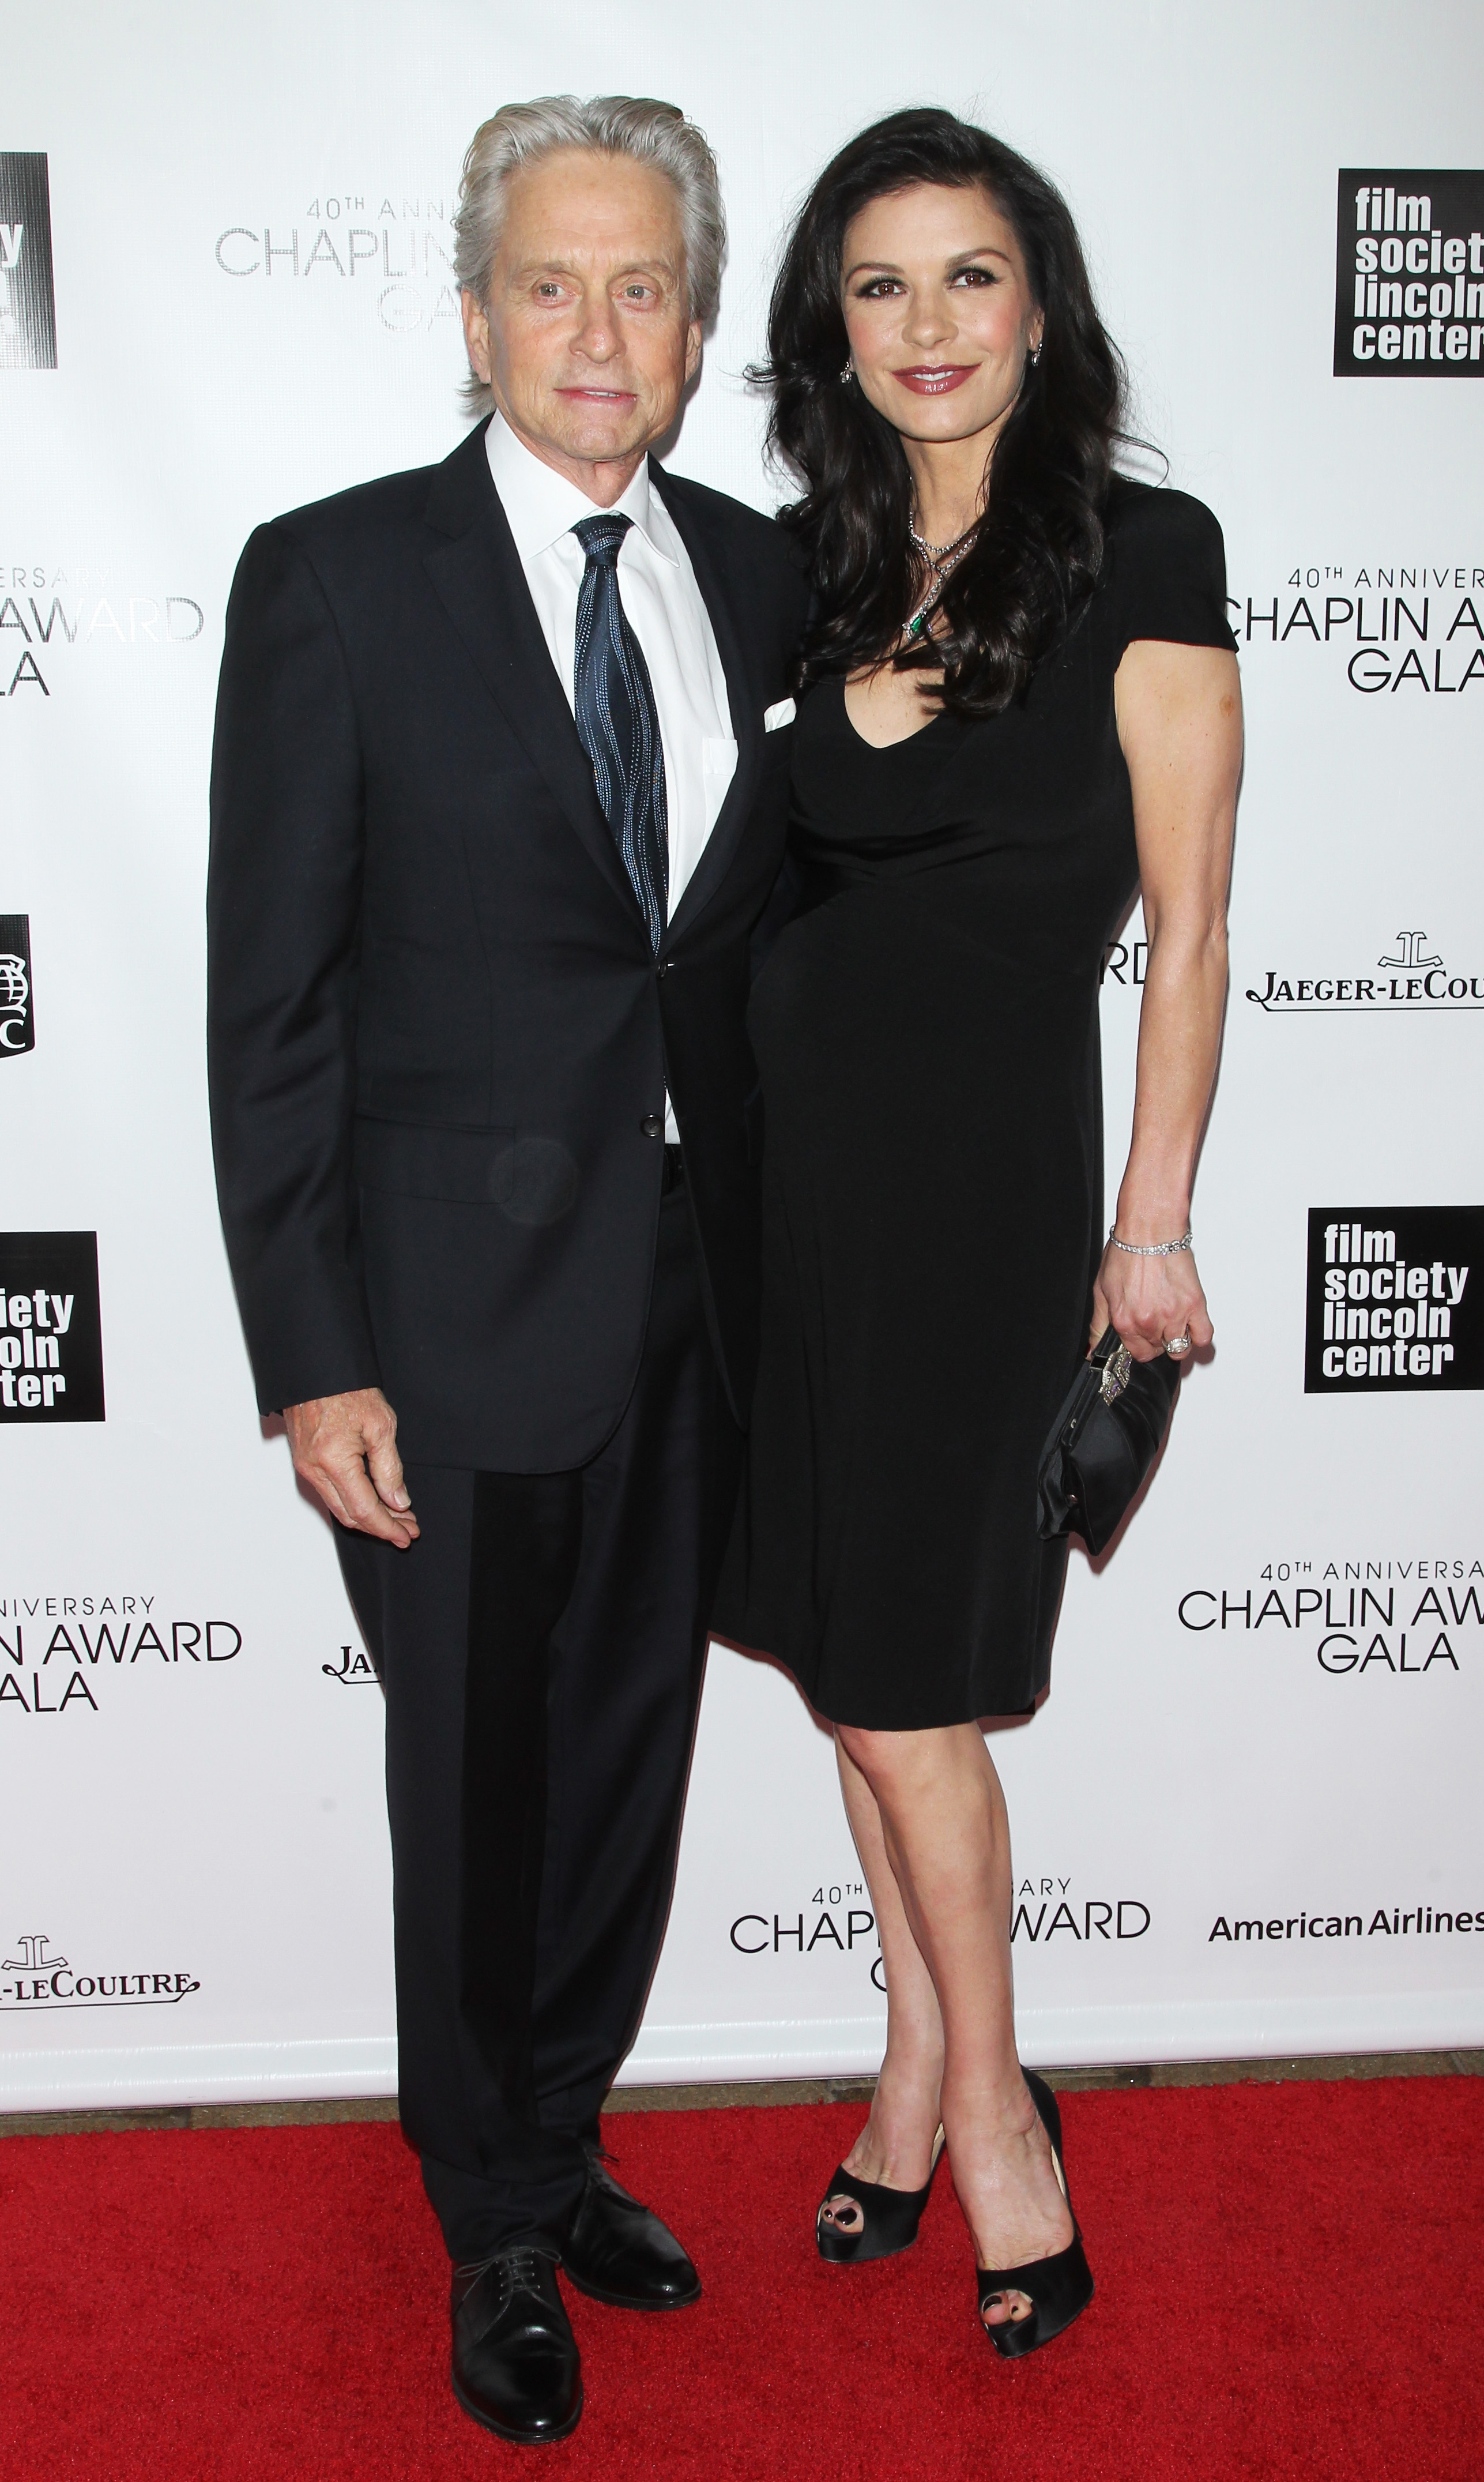 Michael Douglas and Catherine Zeta-Jones made their last red carpet appearance on April 22. (Getty Images)